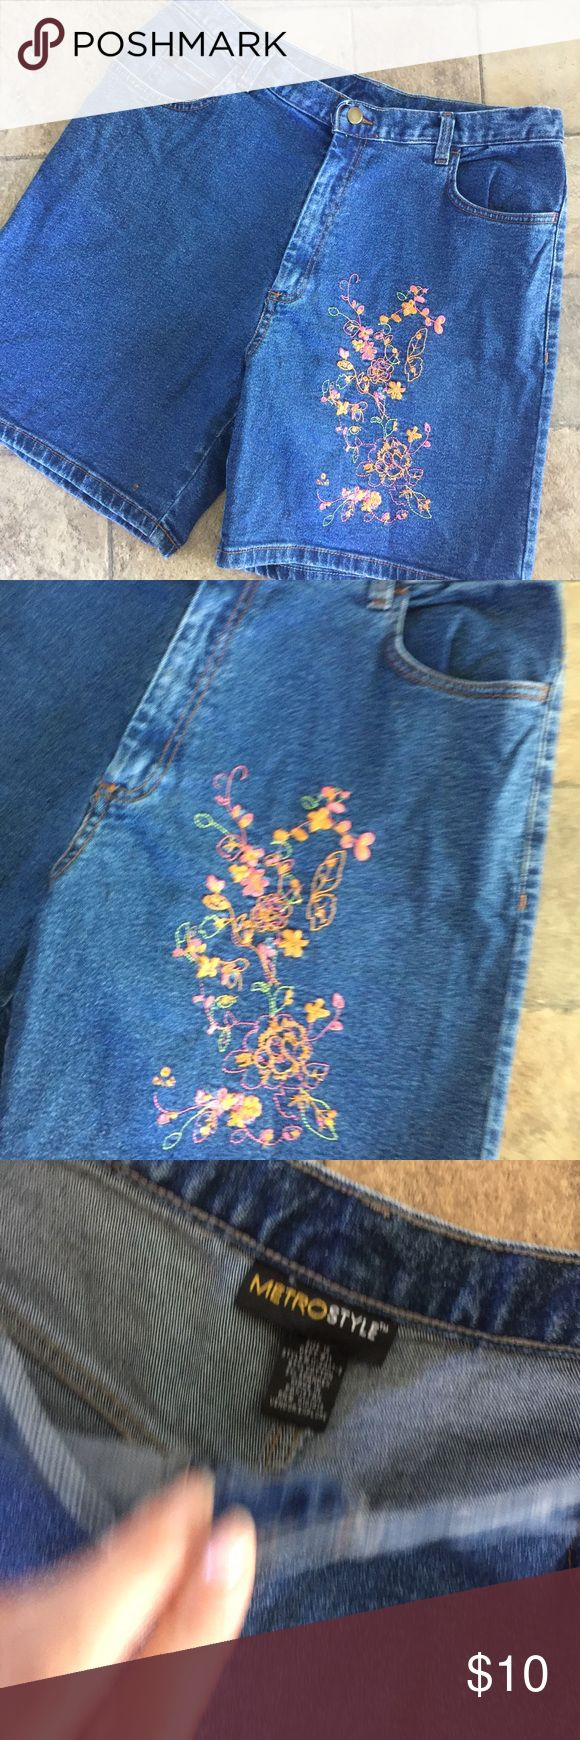 Metro Style Embroidered Jean Shorts Sz 16 Jean Shorts Embroidered with flowers.Nice condition,Sz 16. Metro Style Shorts Jean Shorts